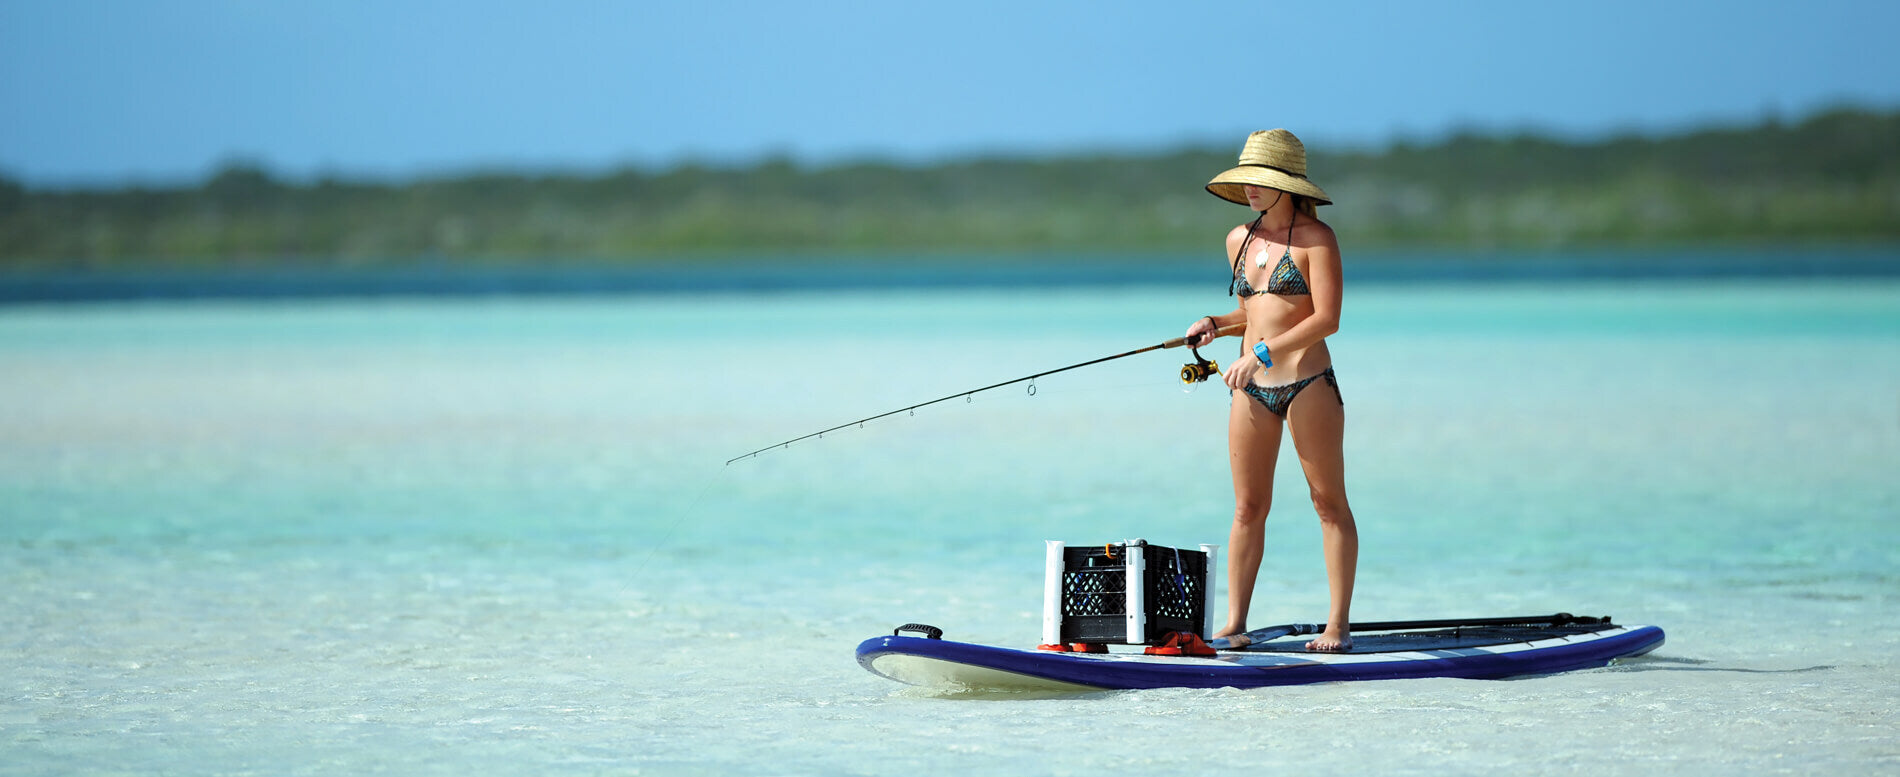 Fishing Paddle Board vs Fishing Kayak: Which is better?